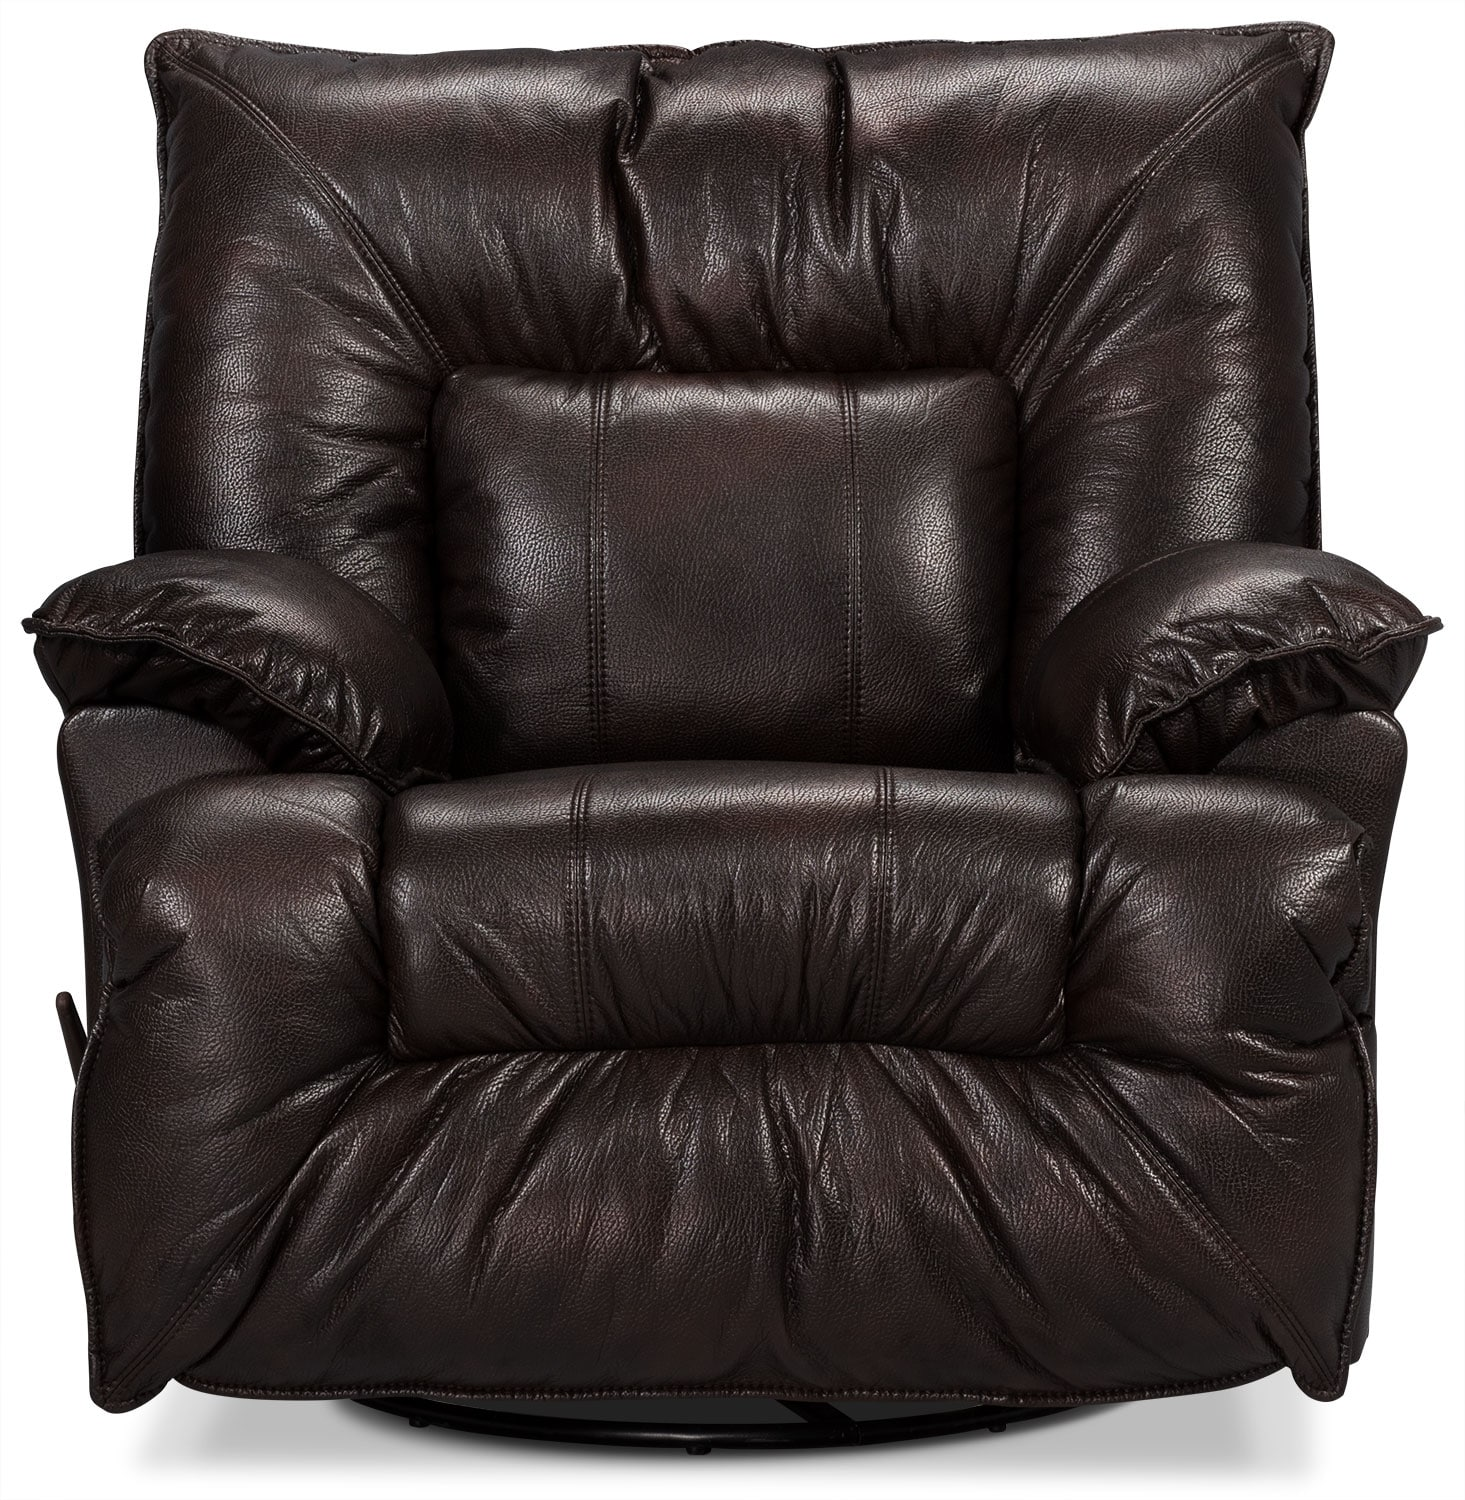 Living Room Furniture - Designed2B Recliner 7726 Leather-Look Fabric Swivel Glider Chair - Java